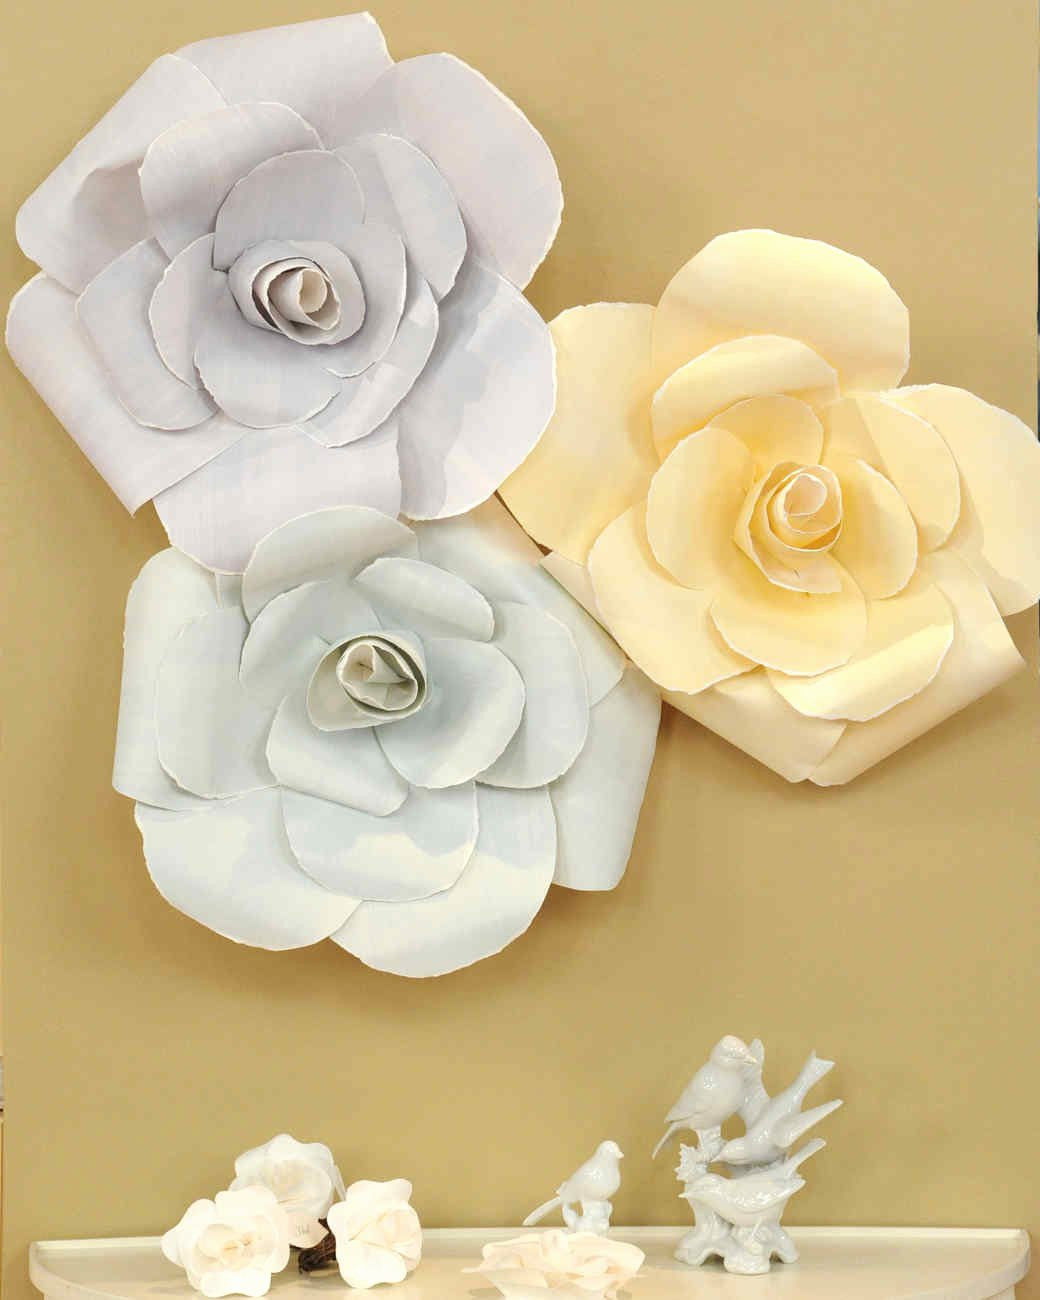 Paper Flower Template Martha Stewart Lovely Rose Inspired Recipes Crafts and Decor